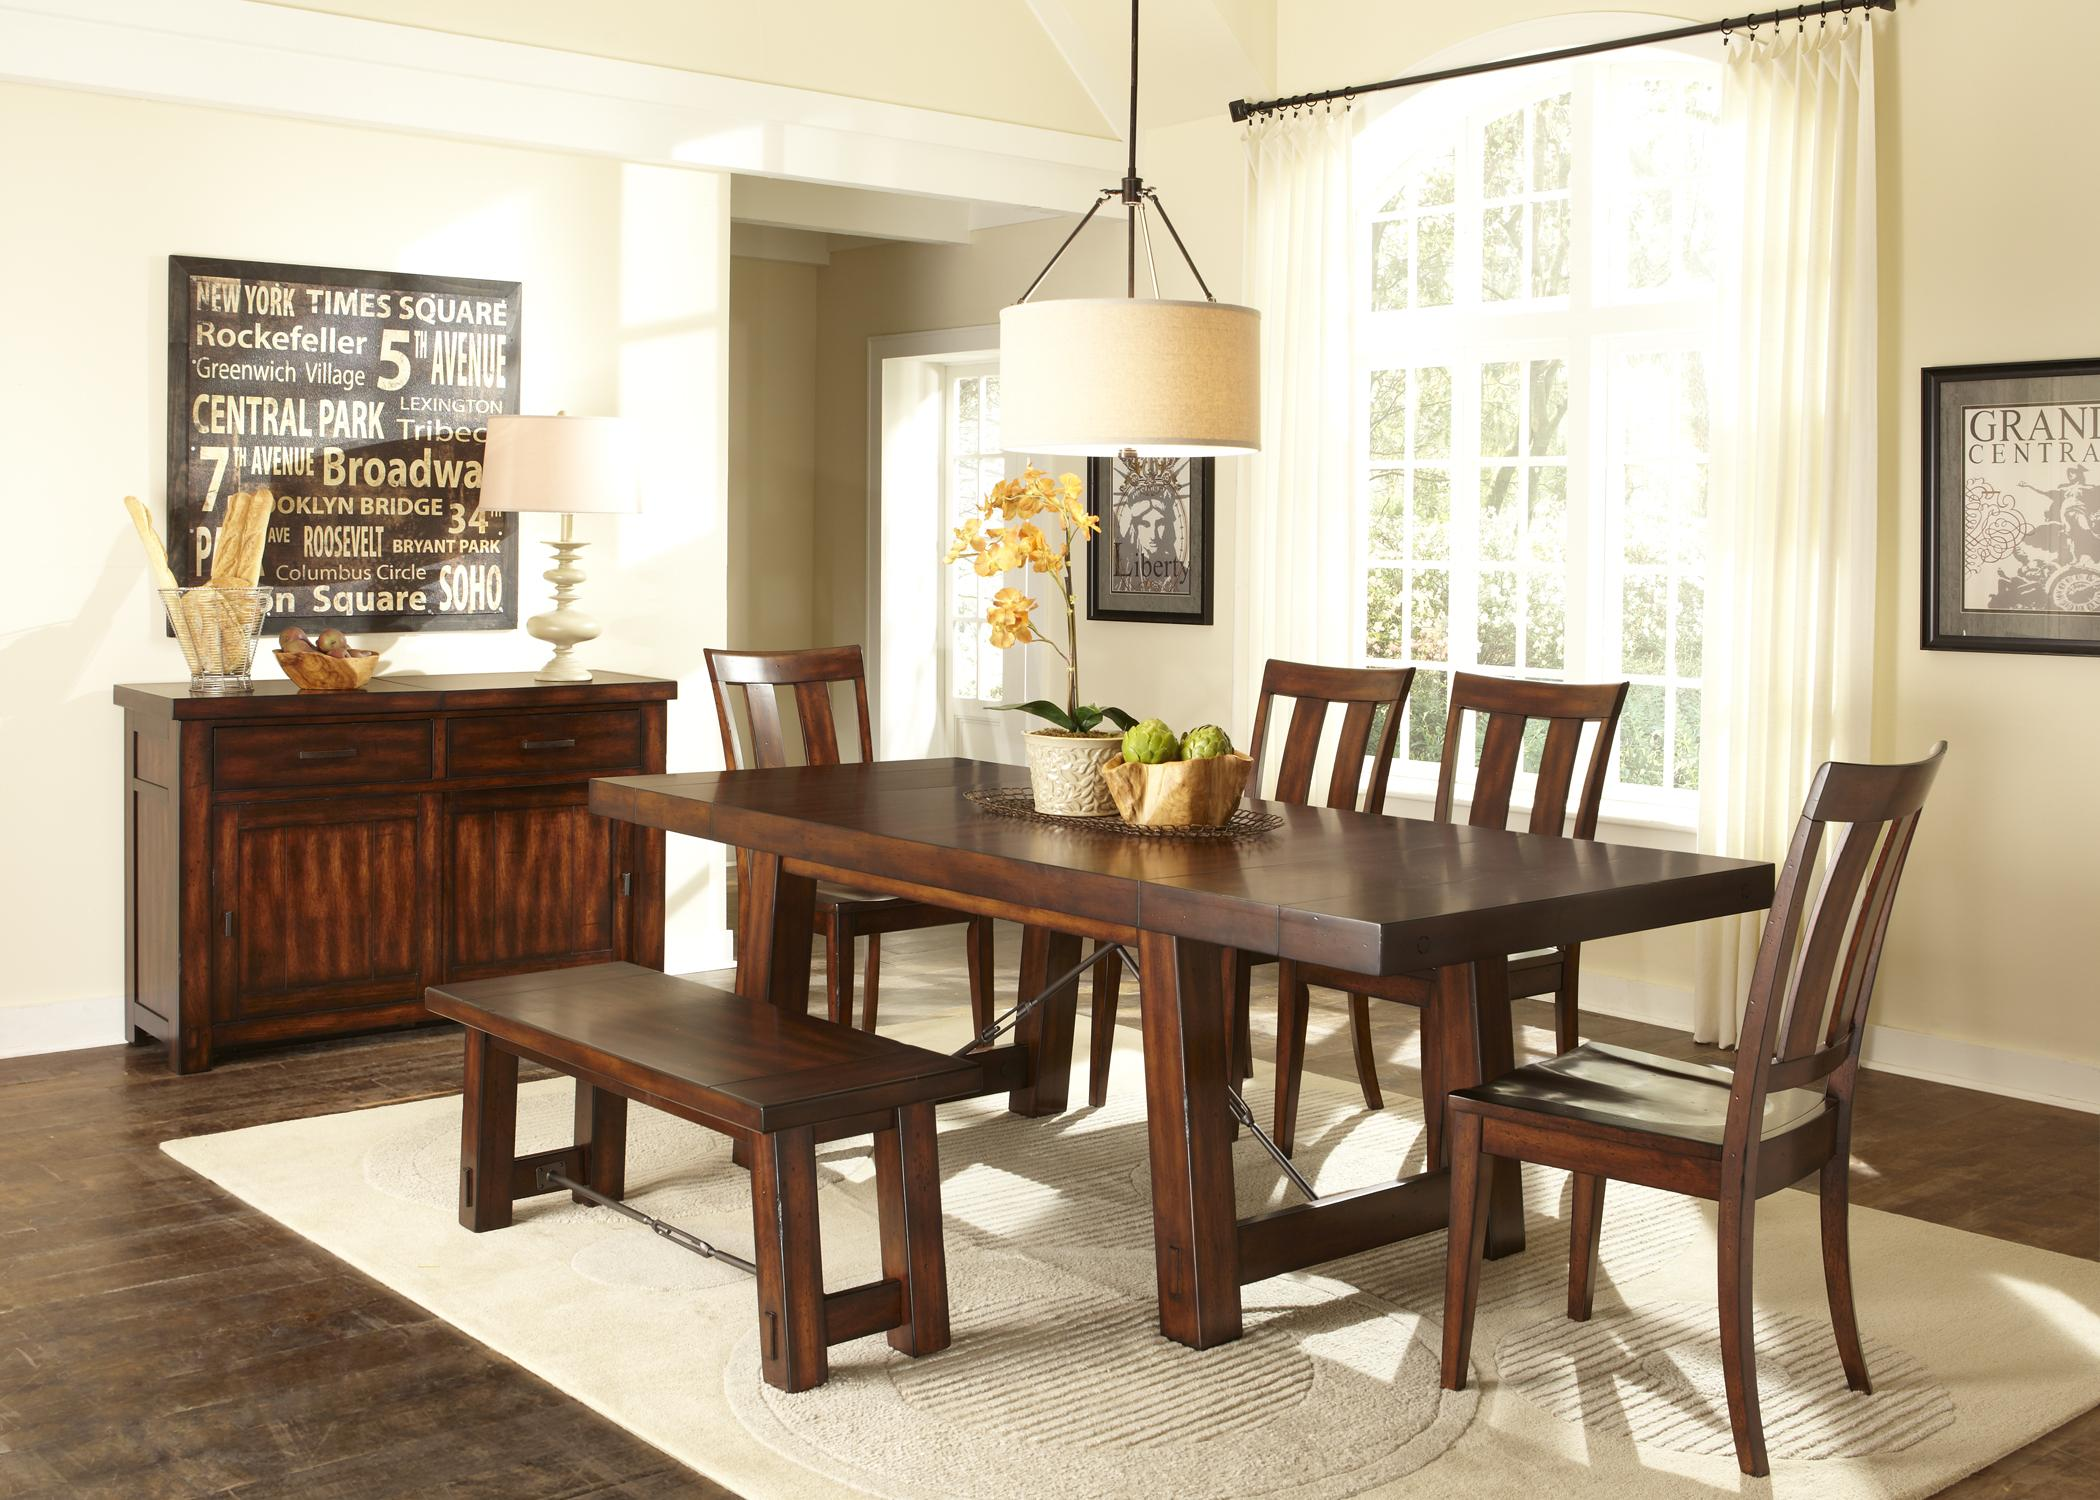 Superb Liberty Furniture Tahoe 6 Piece Dining Table And Slat Back Chair Set With  Backless Dining Bench   Bullard Furniture   Table U0026 Chair Set With Bench ...